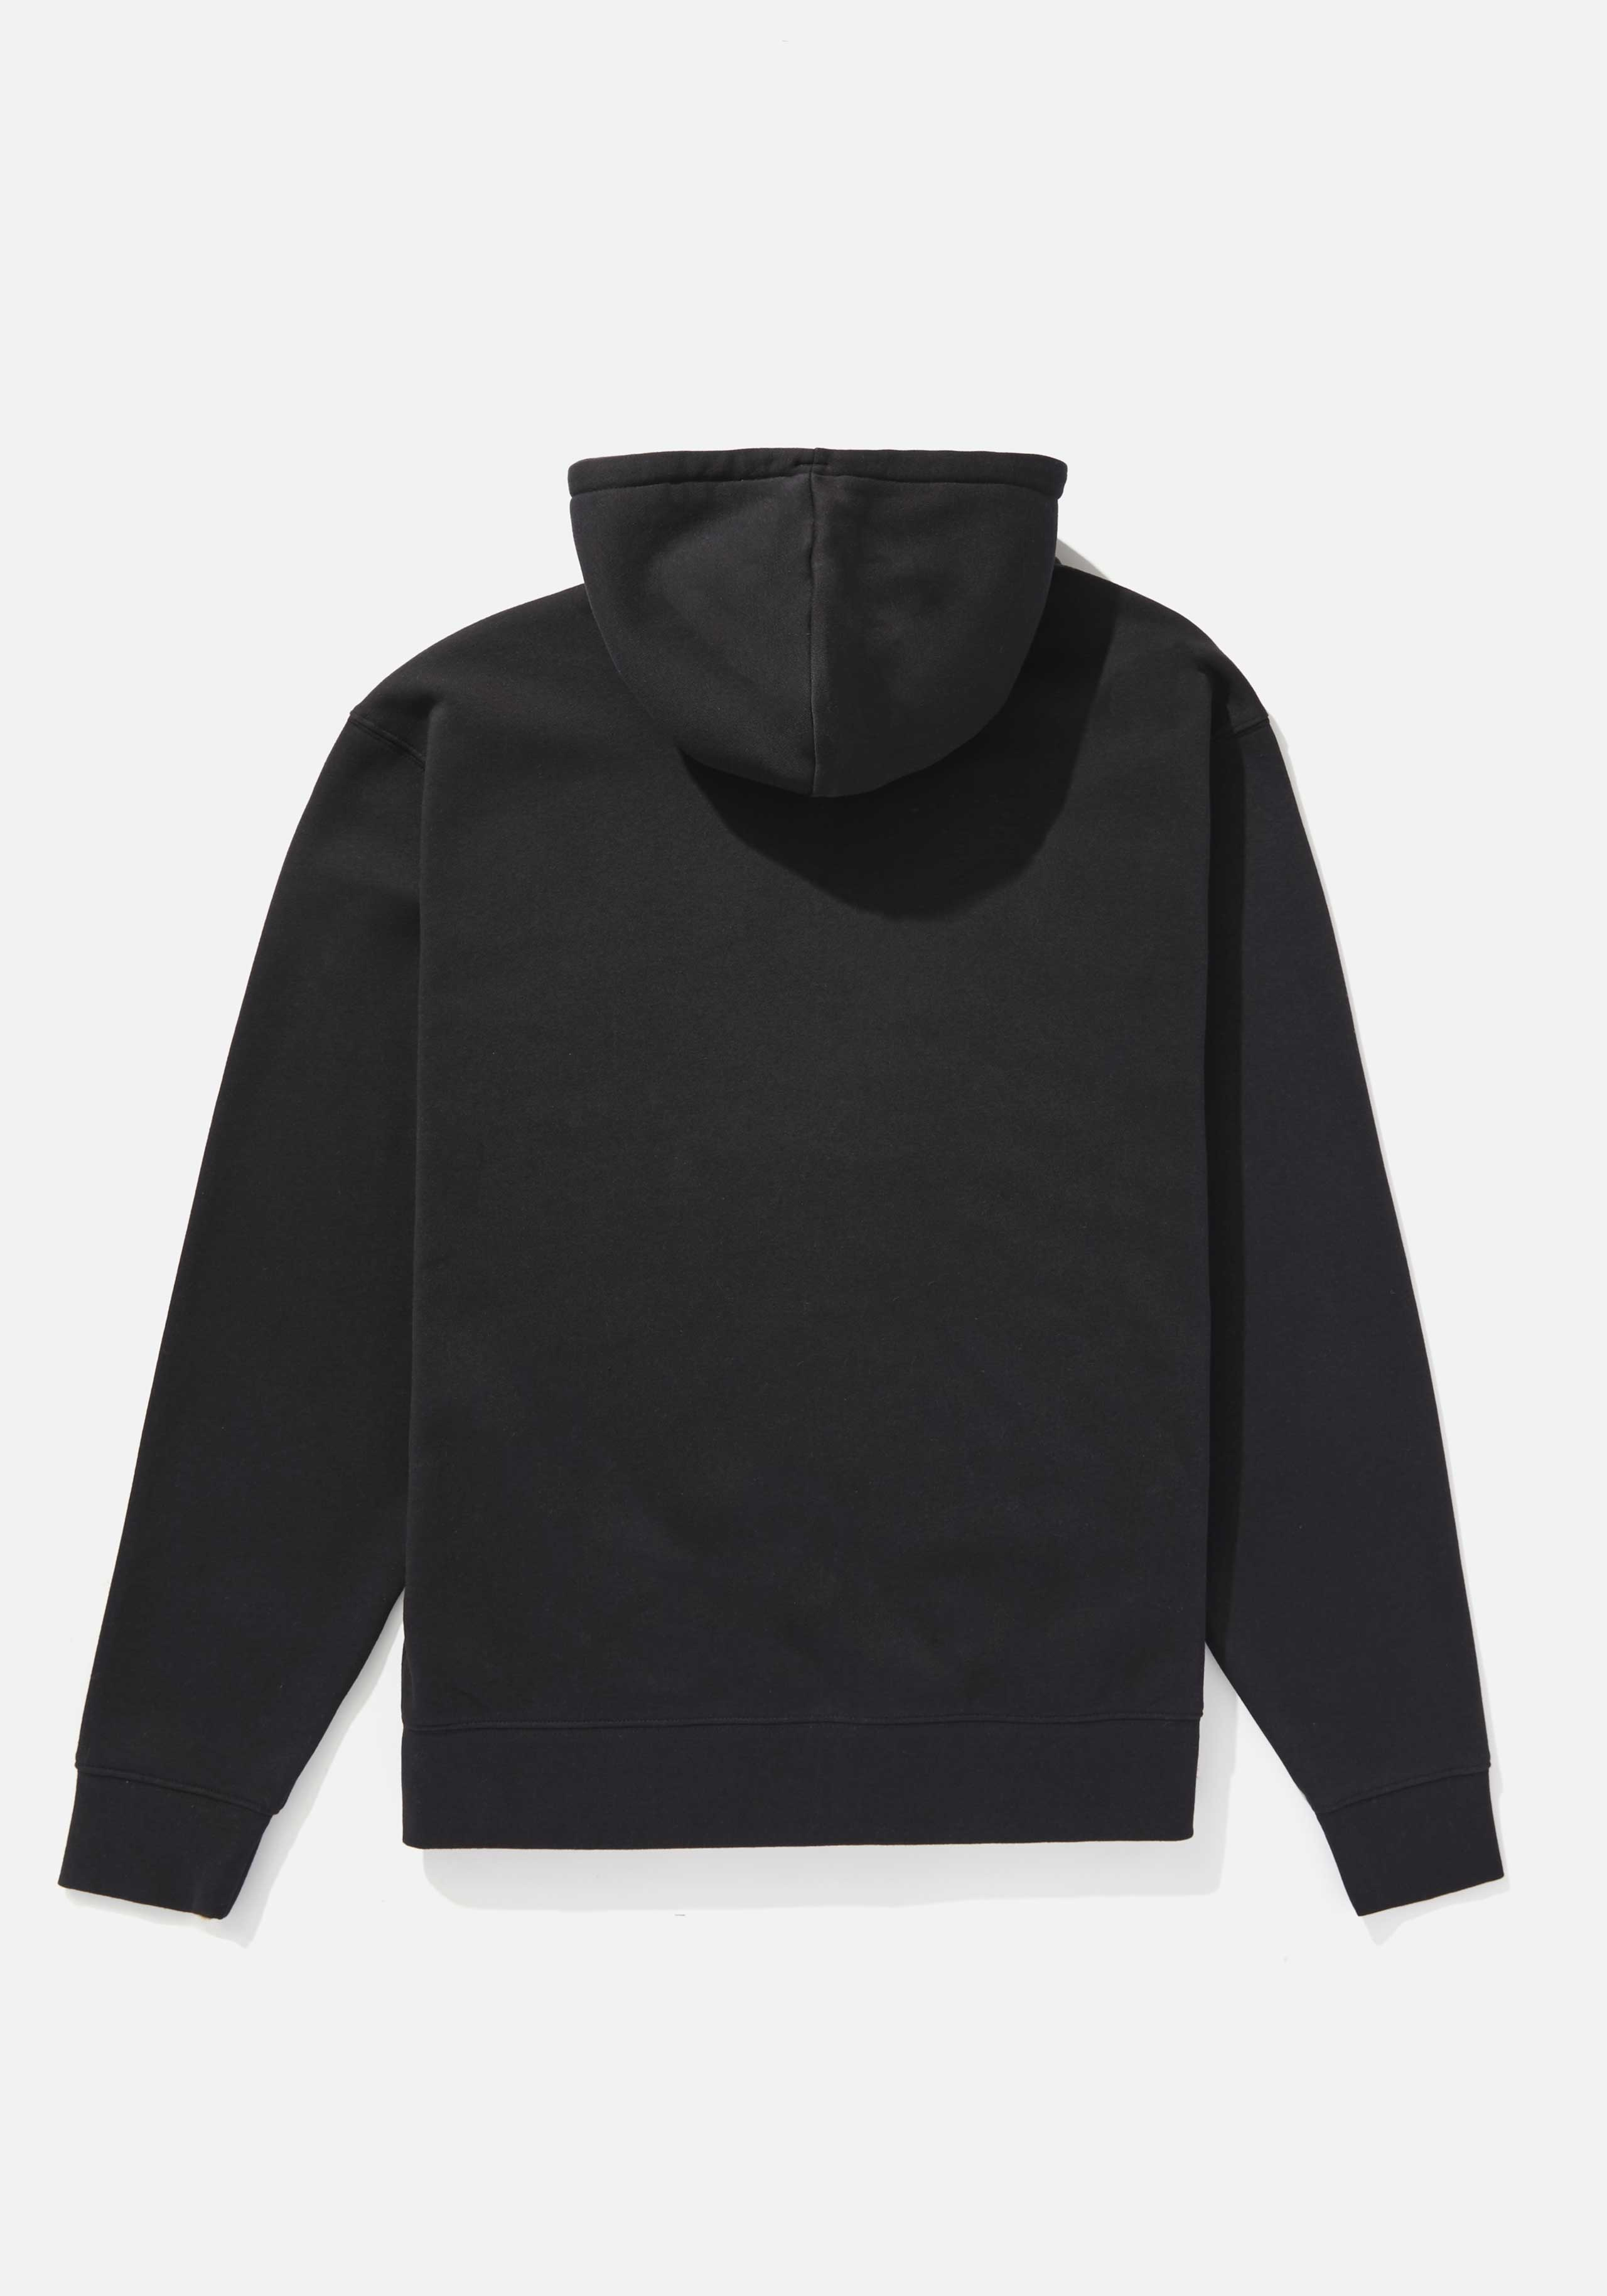 mki relaxed basic zip hoody 2